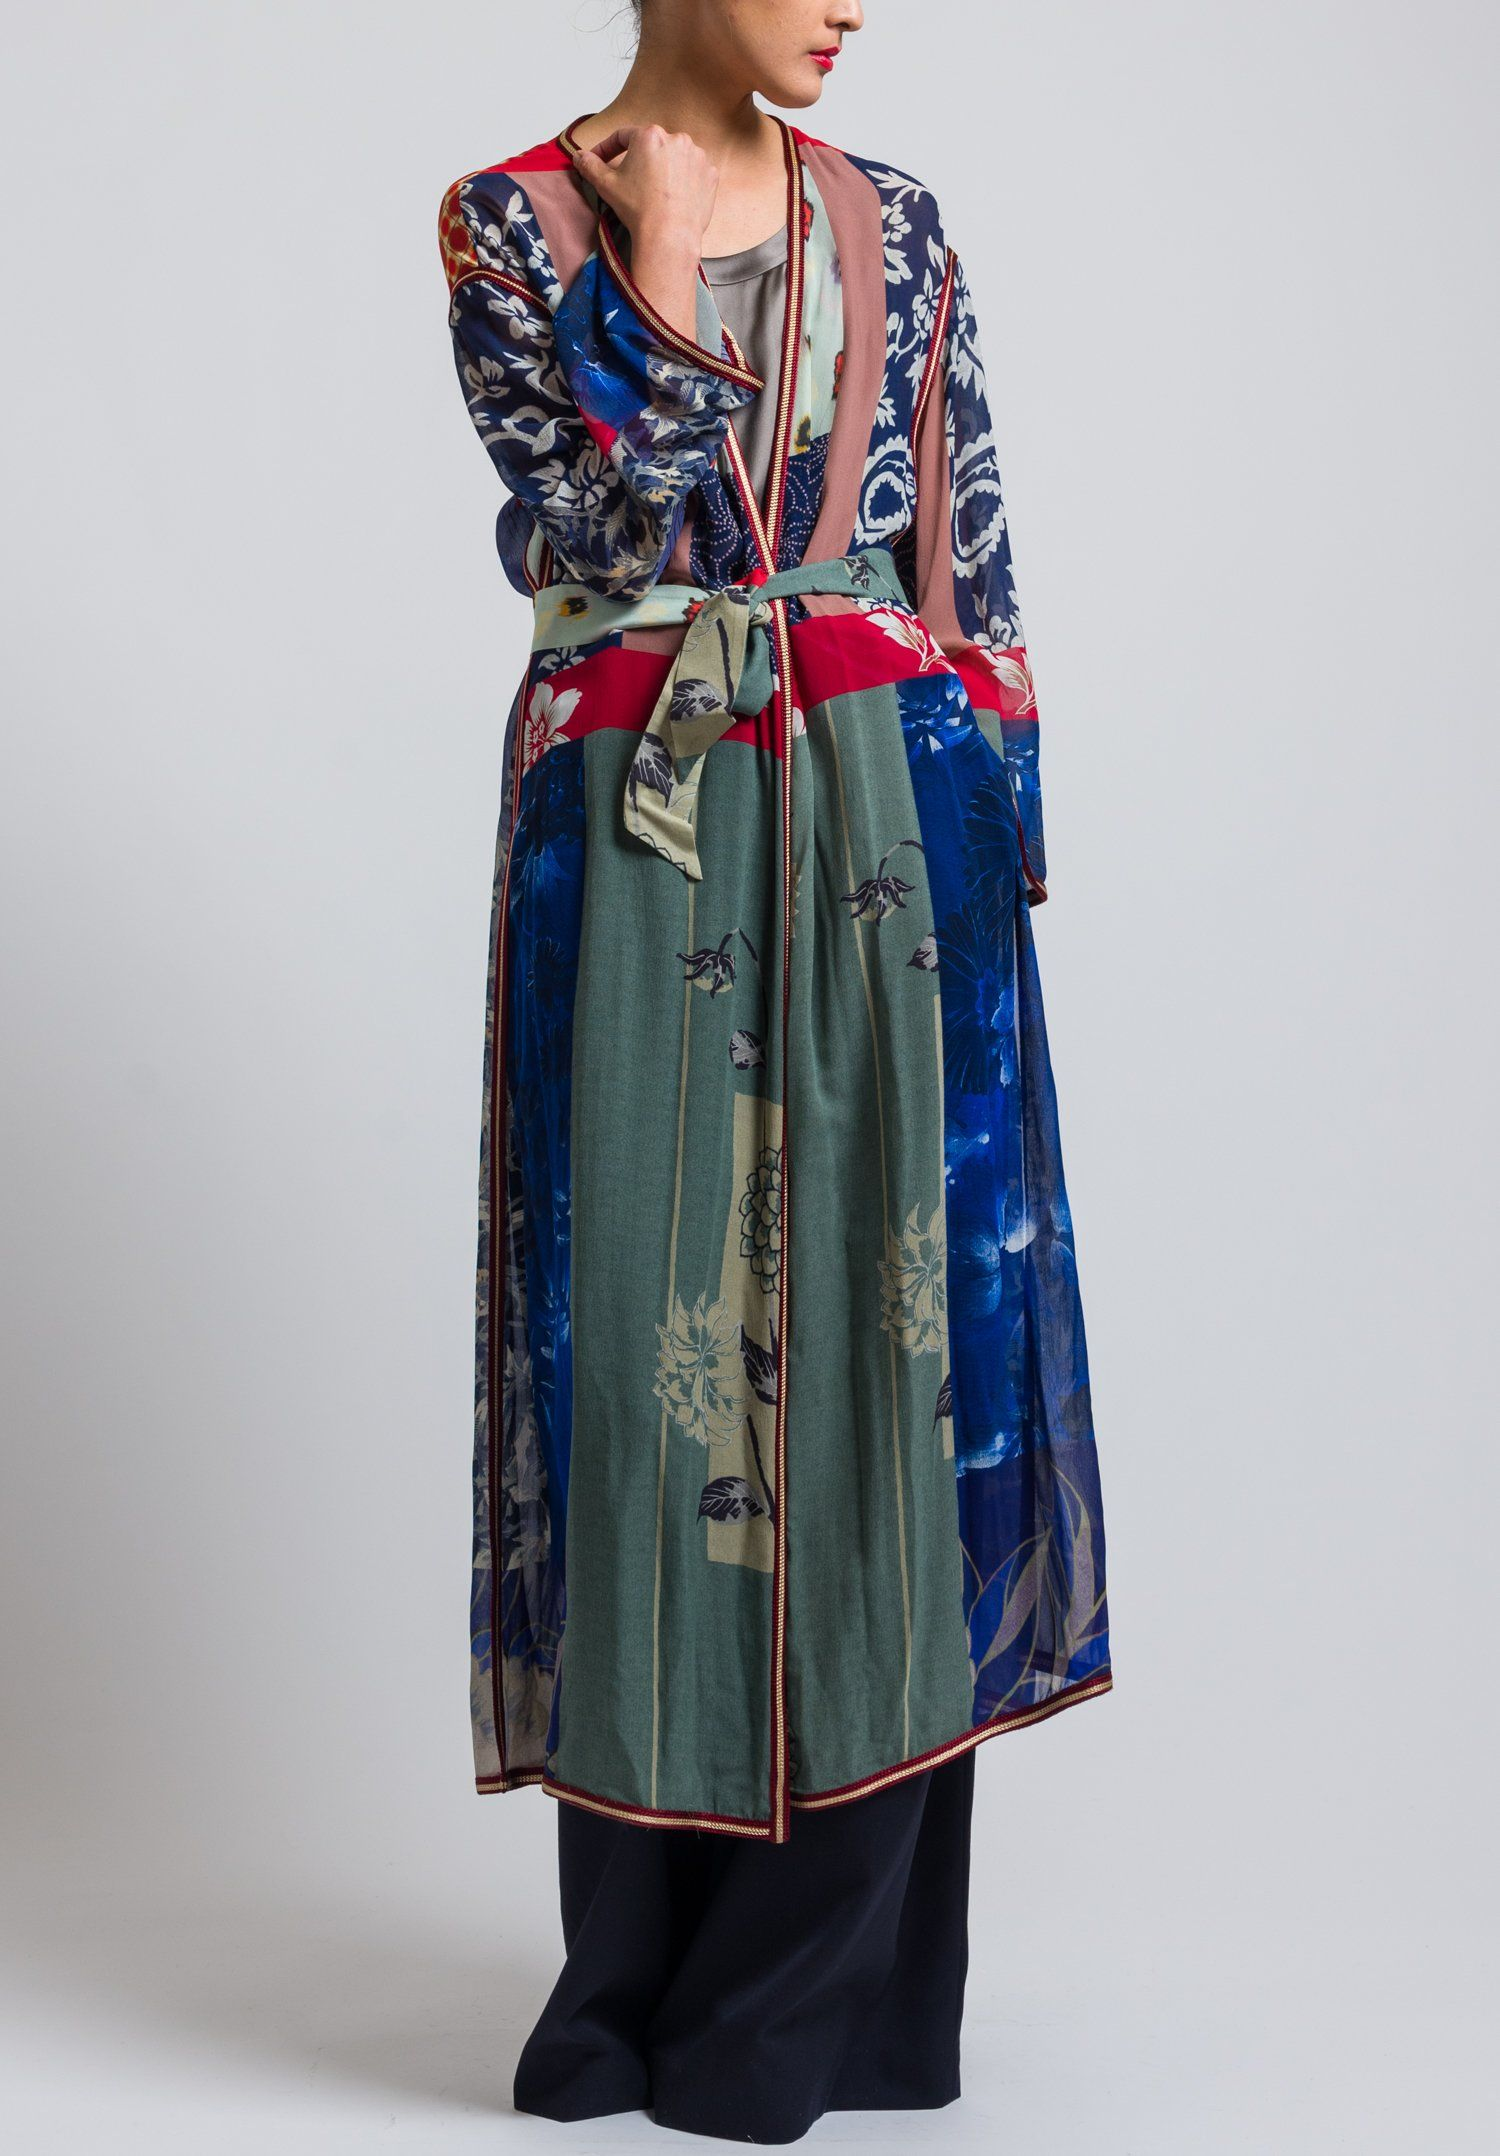 Etro Runway Long Pacific Print Duster In Blue Kimono Fabric Hem Style Patchwork Coat